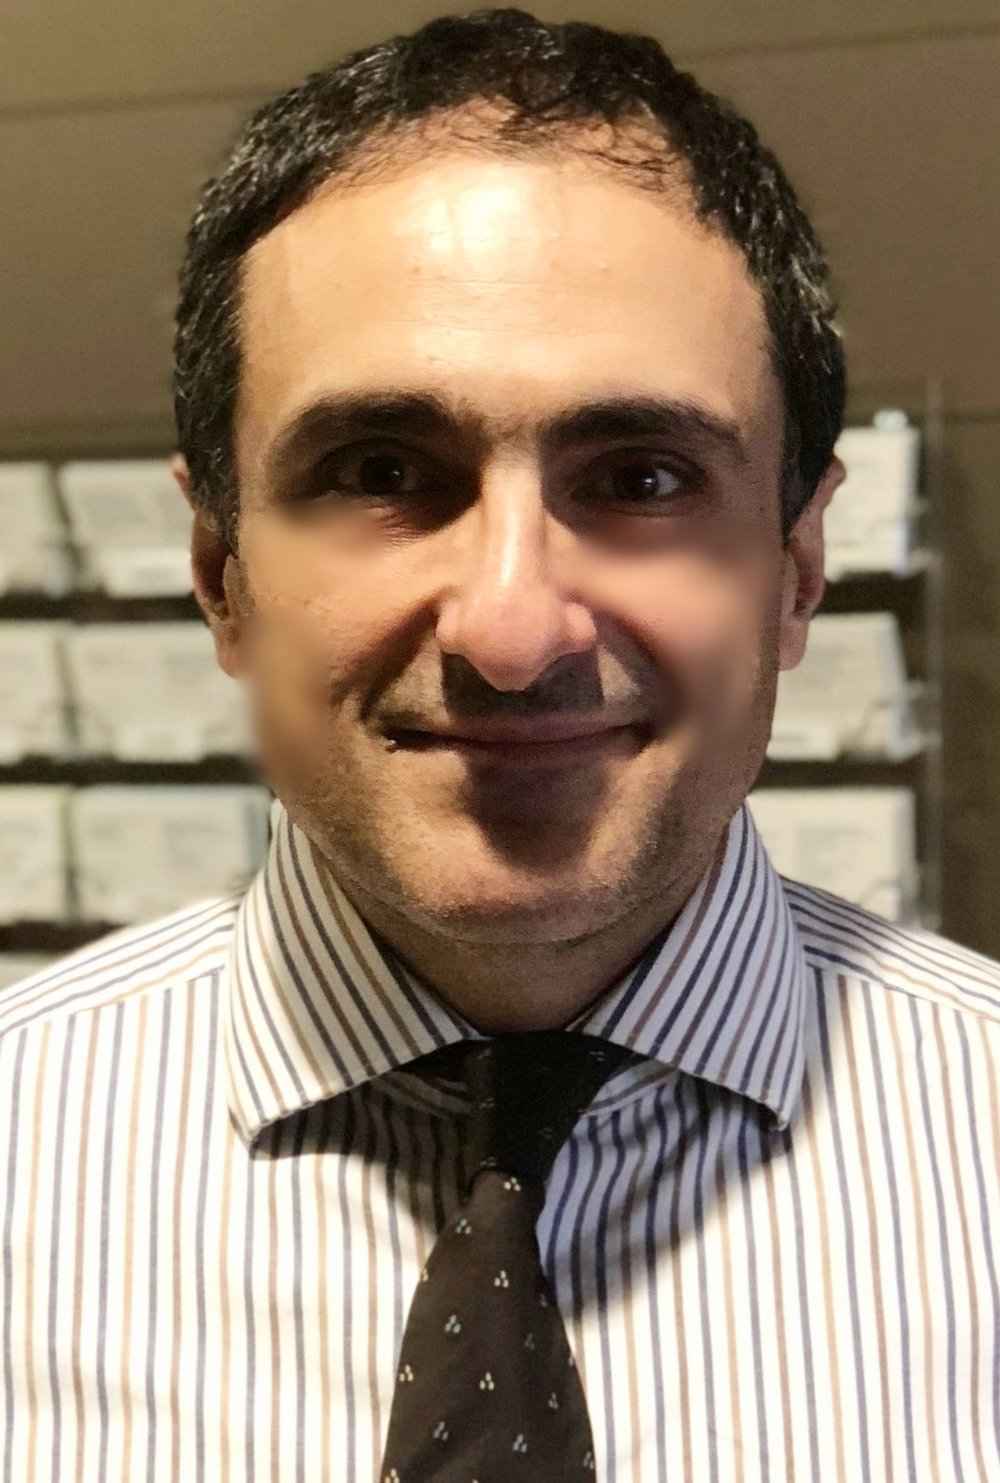 Dr. Babis Andreadis - • Oncologist: Specializing in blood cancers like lymphoma, leukemia, and multiple myeloma• Experience: 20 years• Hospital/clinic size: Large teaching institution